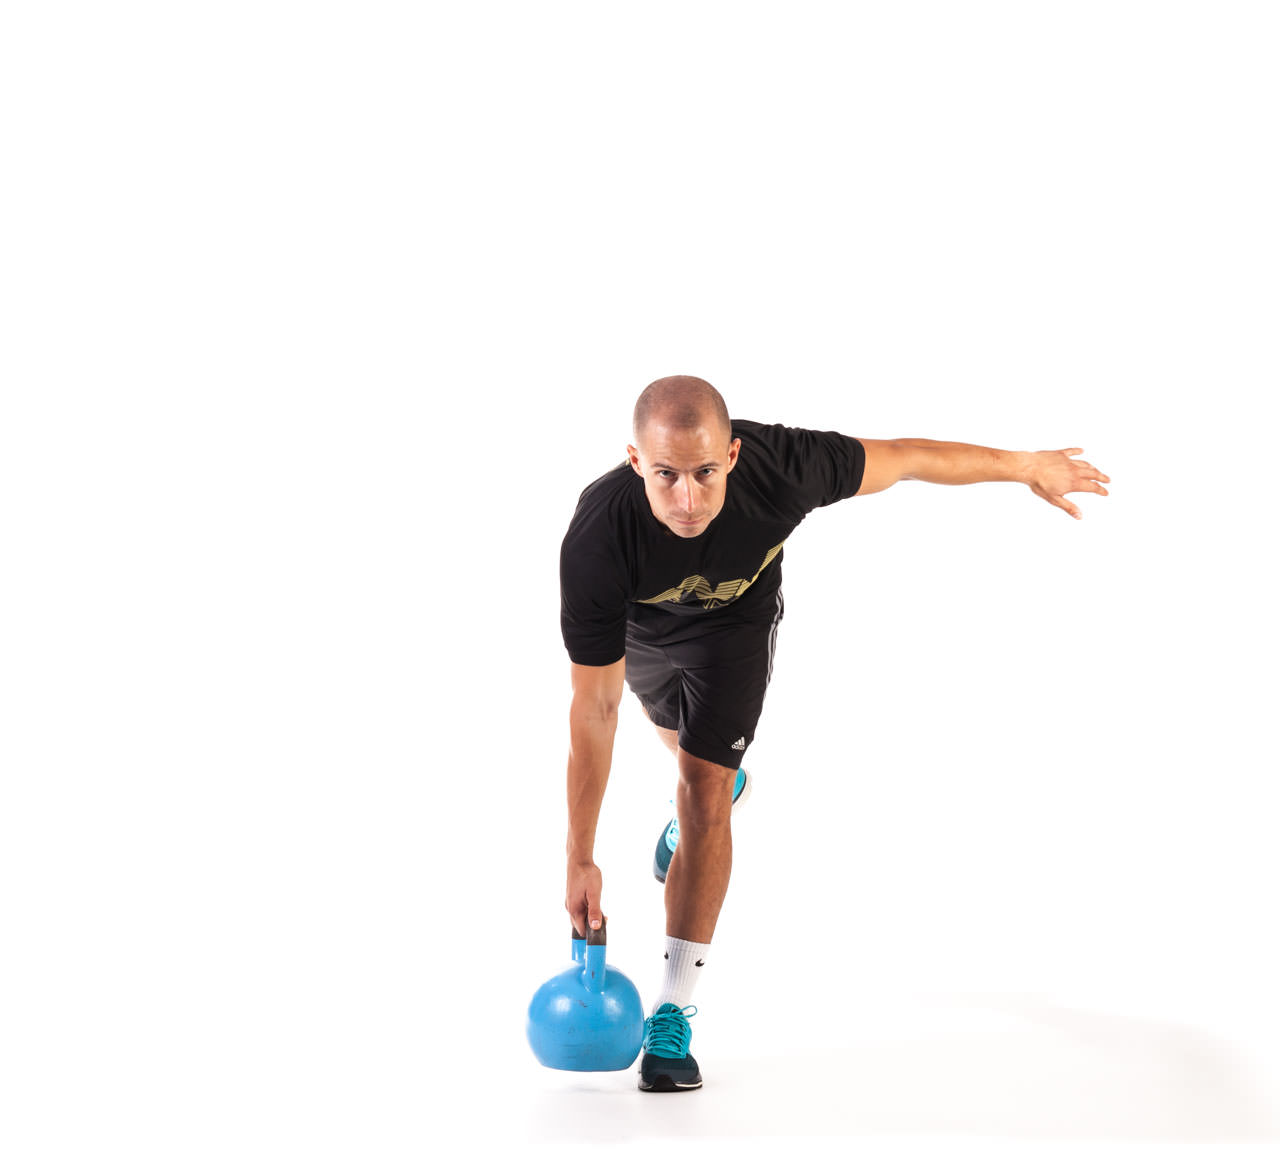 One-Leg Kettlebell Deadlift frame #2